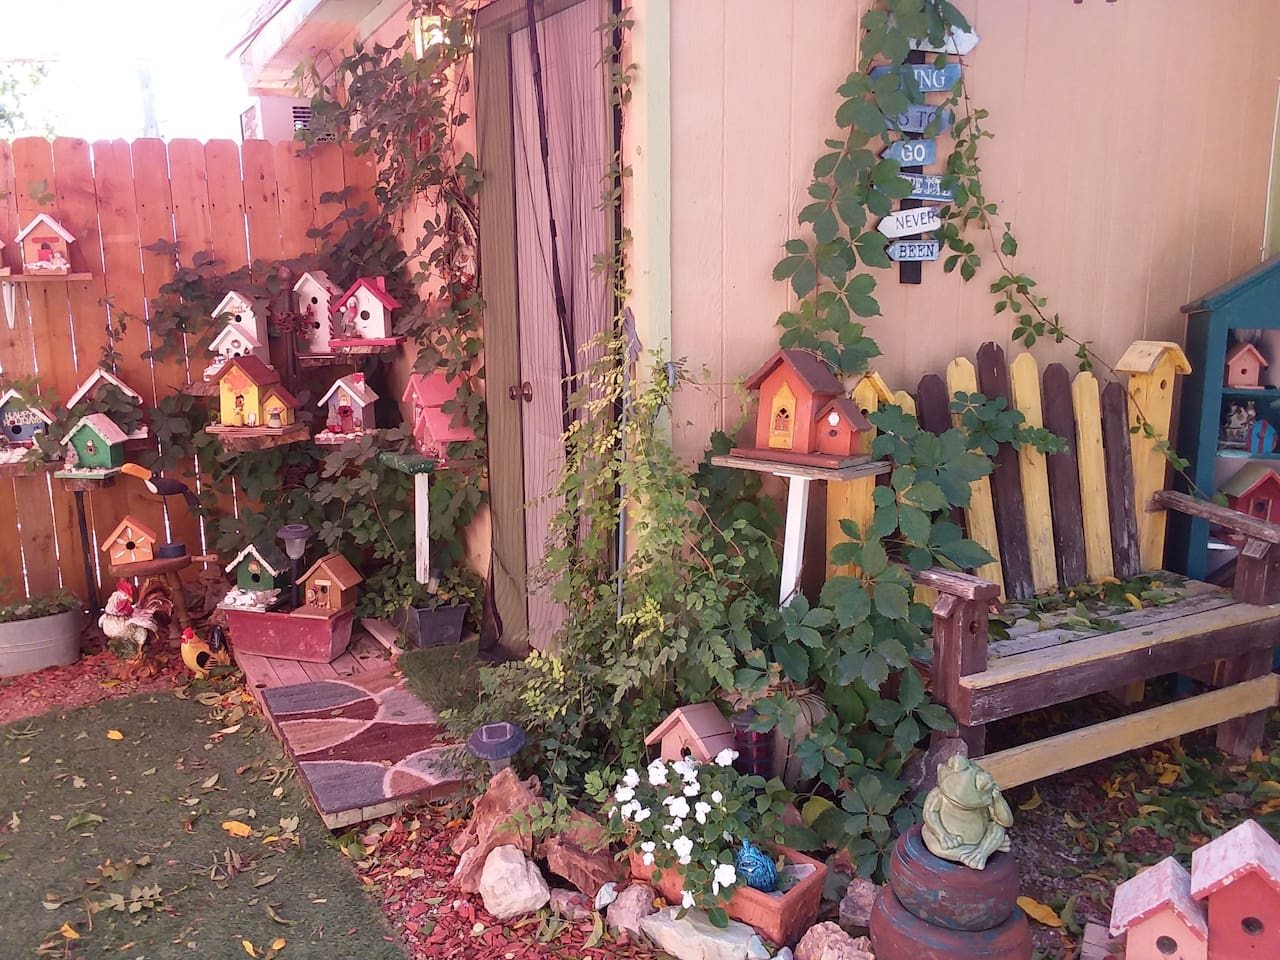 This is the front entrance to the Kookoo'z nest surrounded by many of my favorite handcrafted birdhouses!